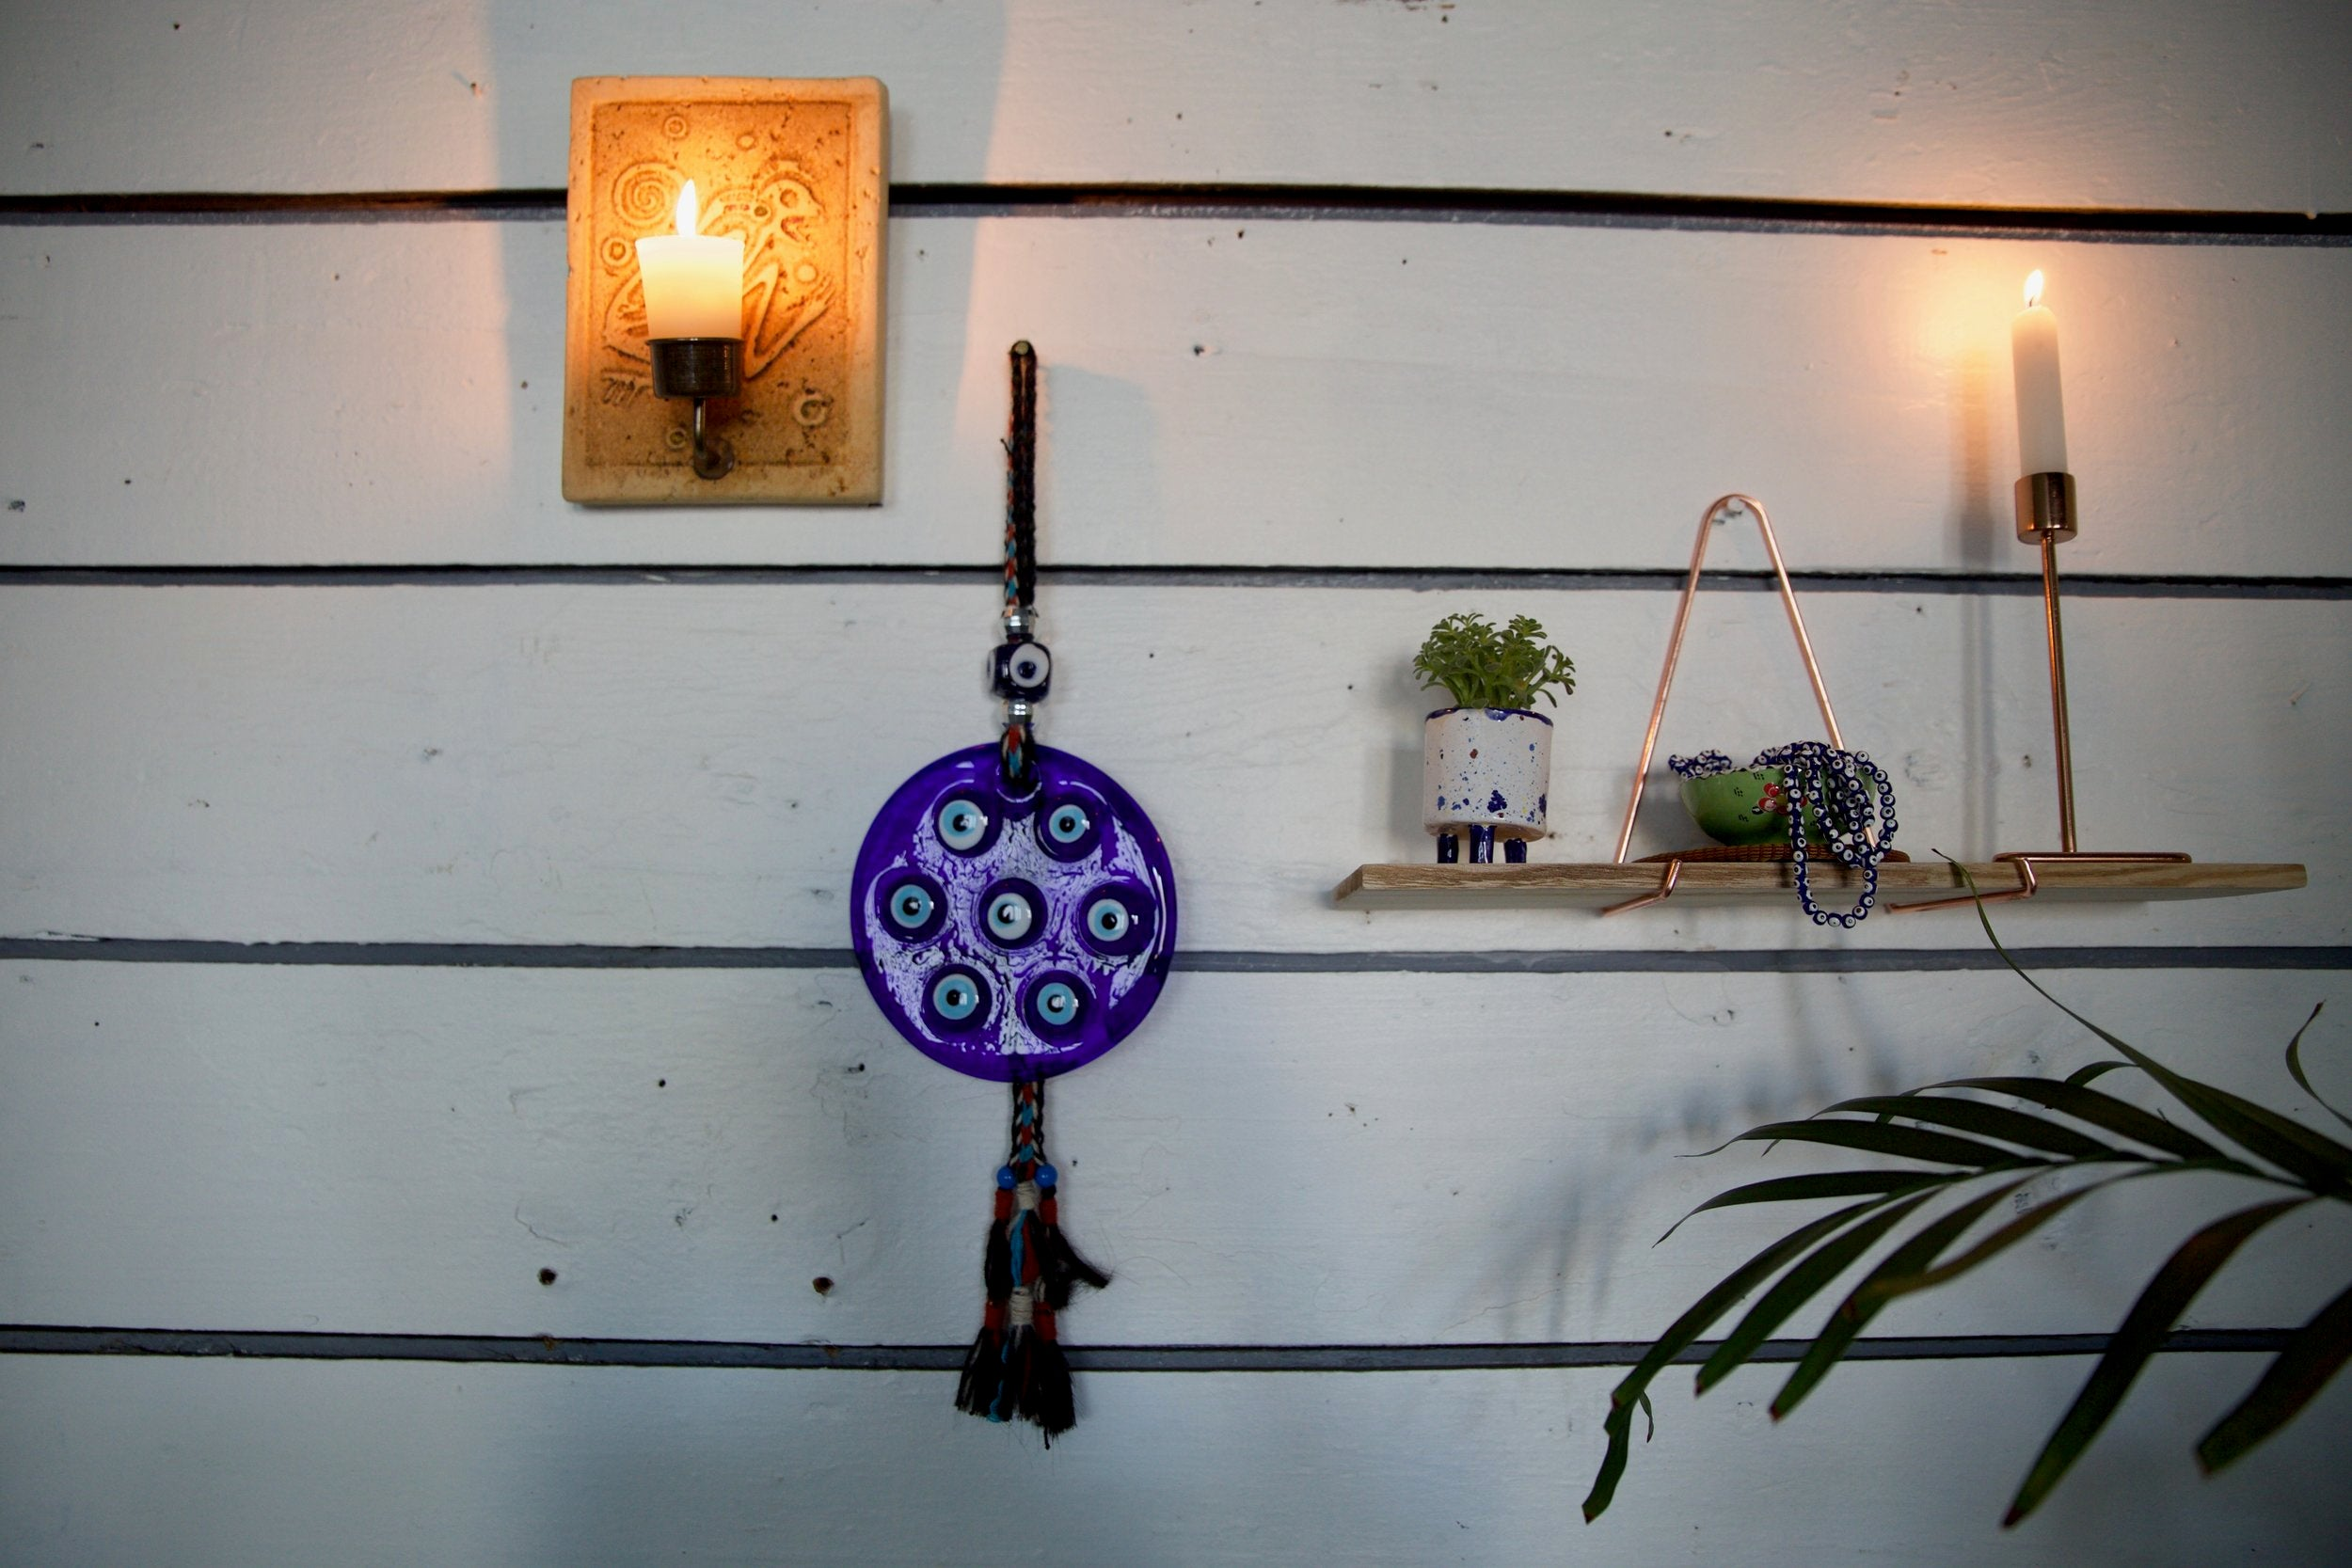 glass-evil-eye-protection-wall-hanging-decoration-2